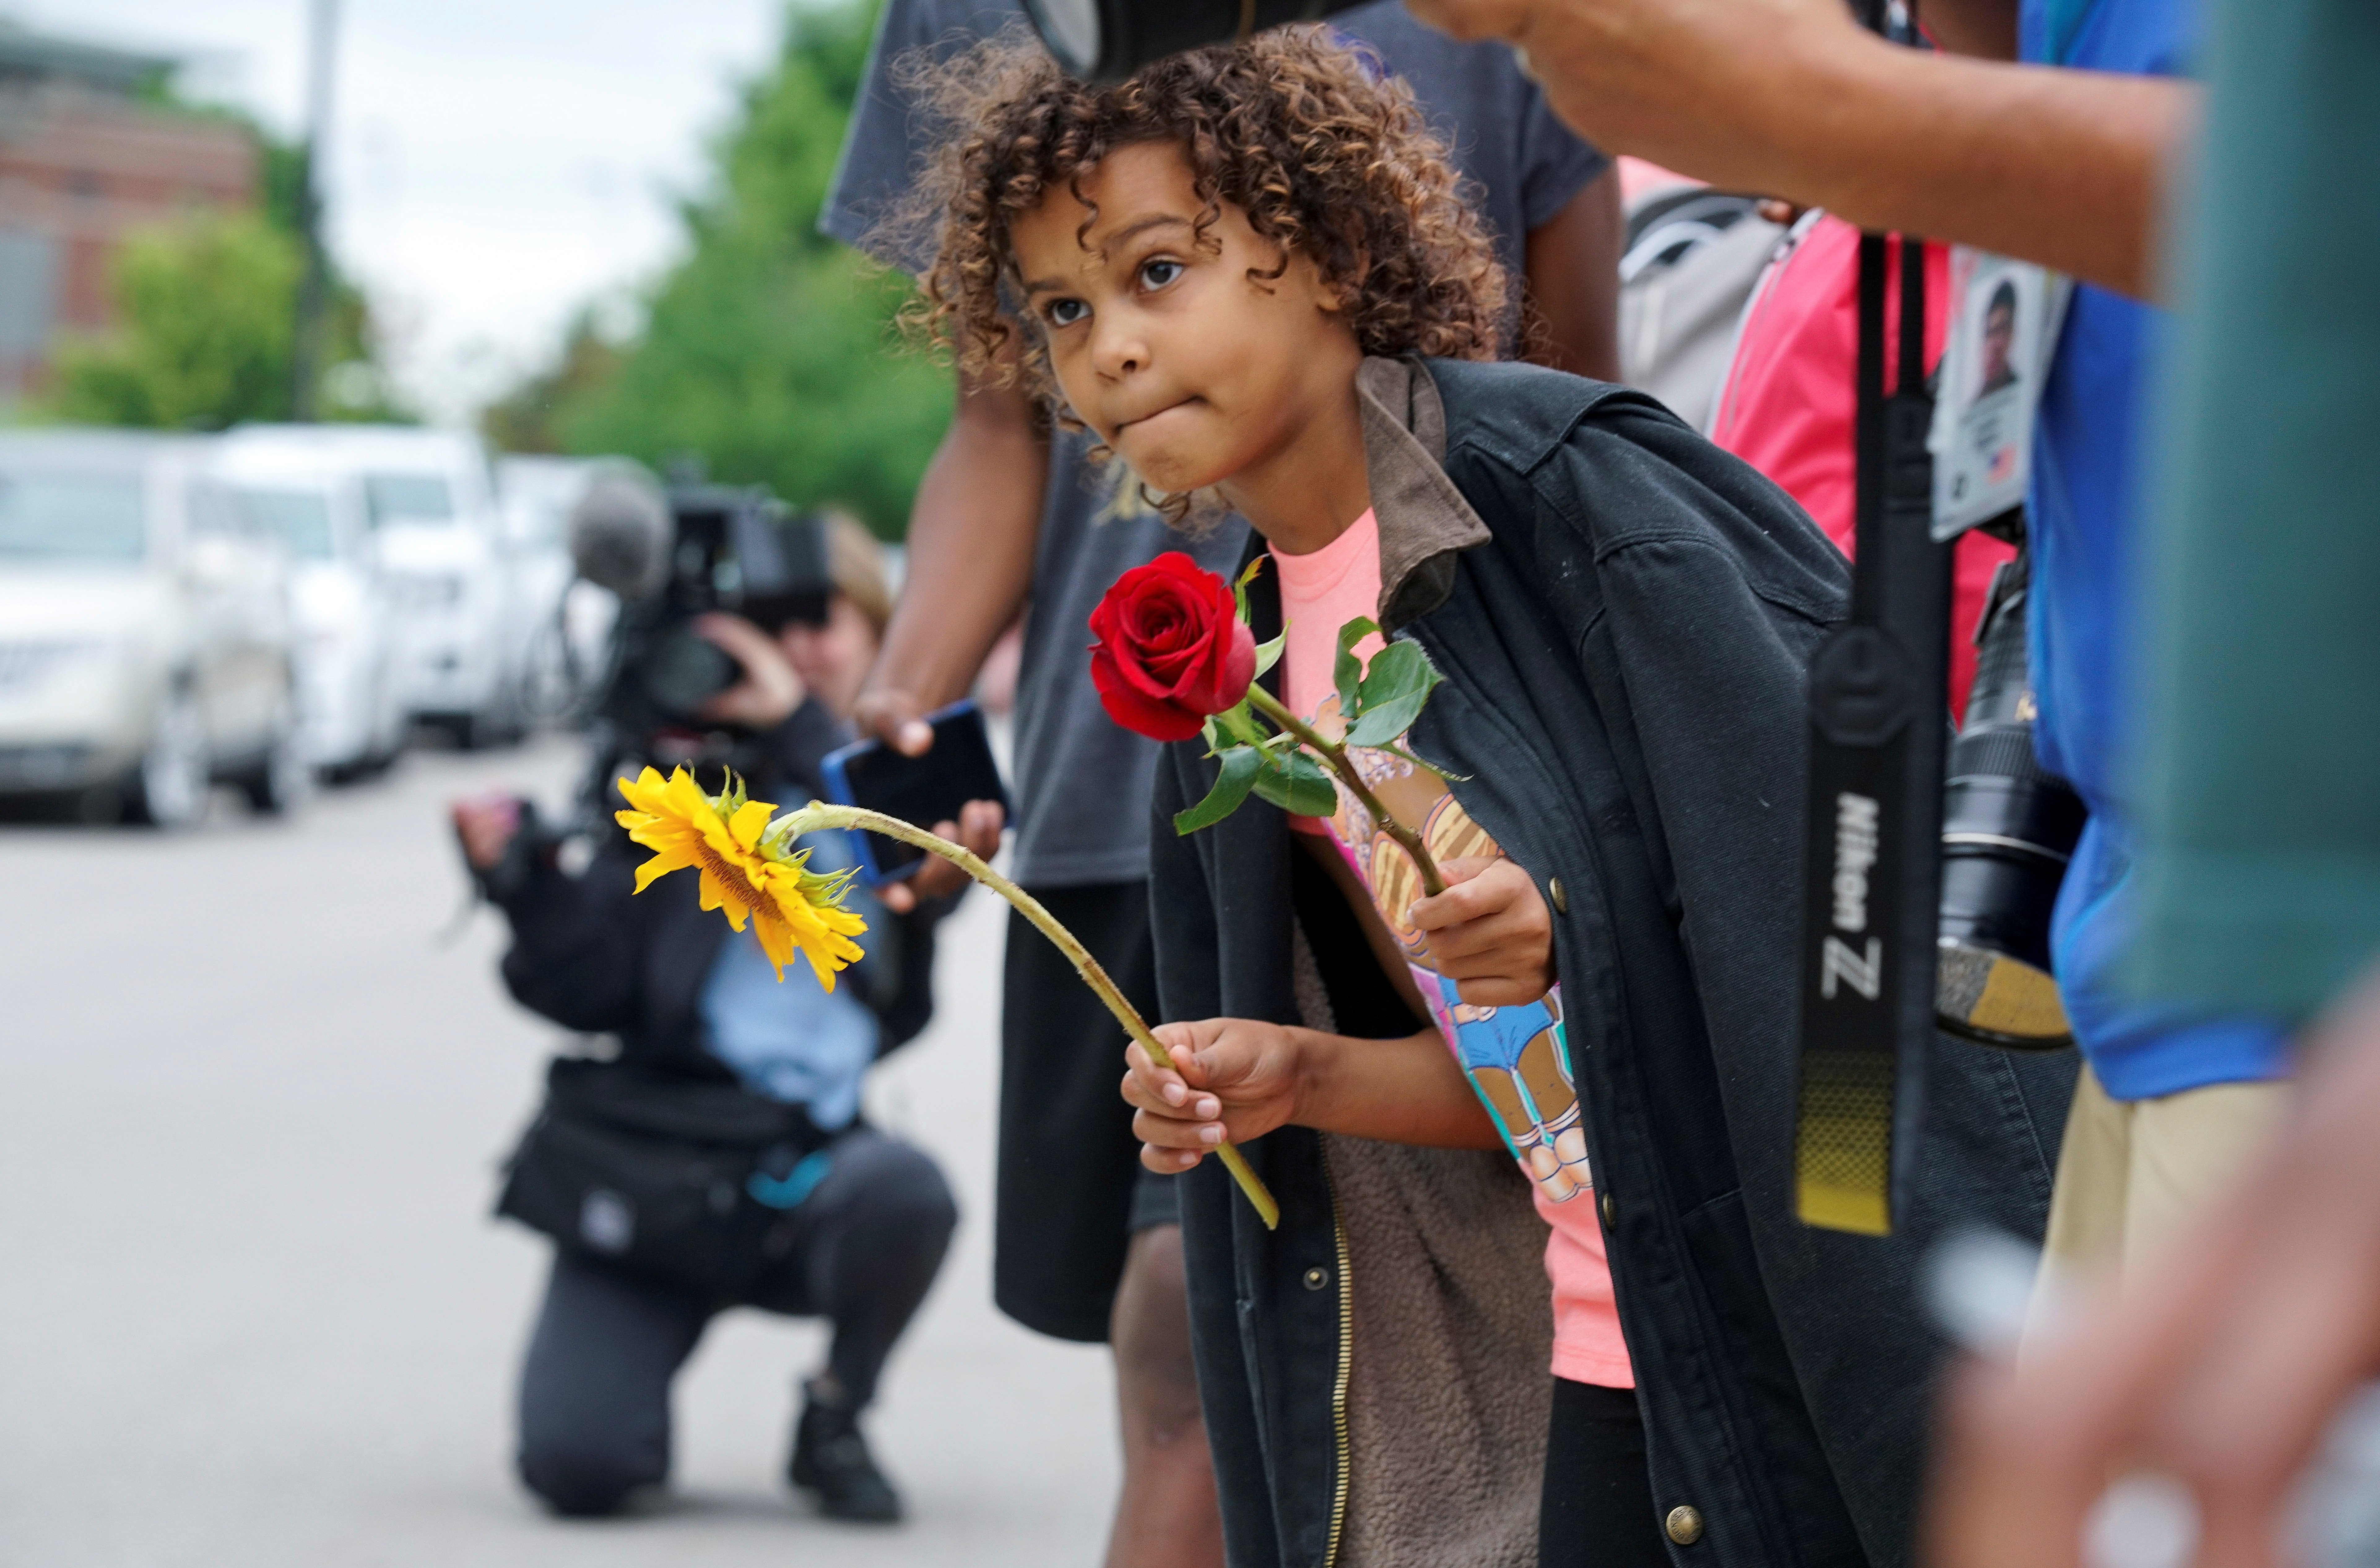 A girl looks out of the crowd hoping to see U.S. President Joe Biden as he visits to mark the 100th anniversary of the 1921 Tulsa Massacre in Tulsa, Oklahoma, U.S., June 1, 2021. REUTERS/Lawrence Bryant/File Photo